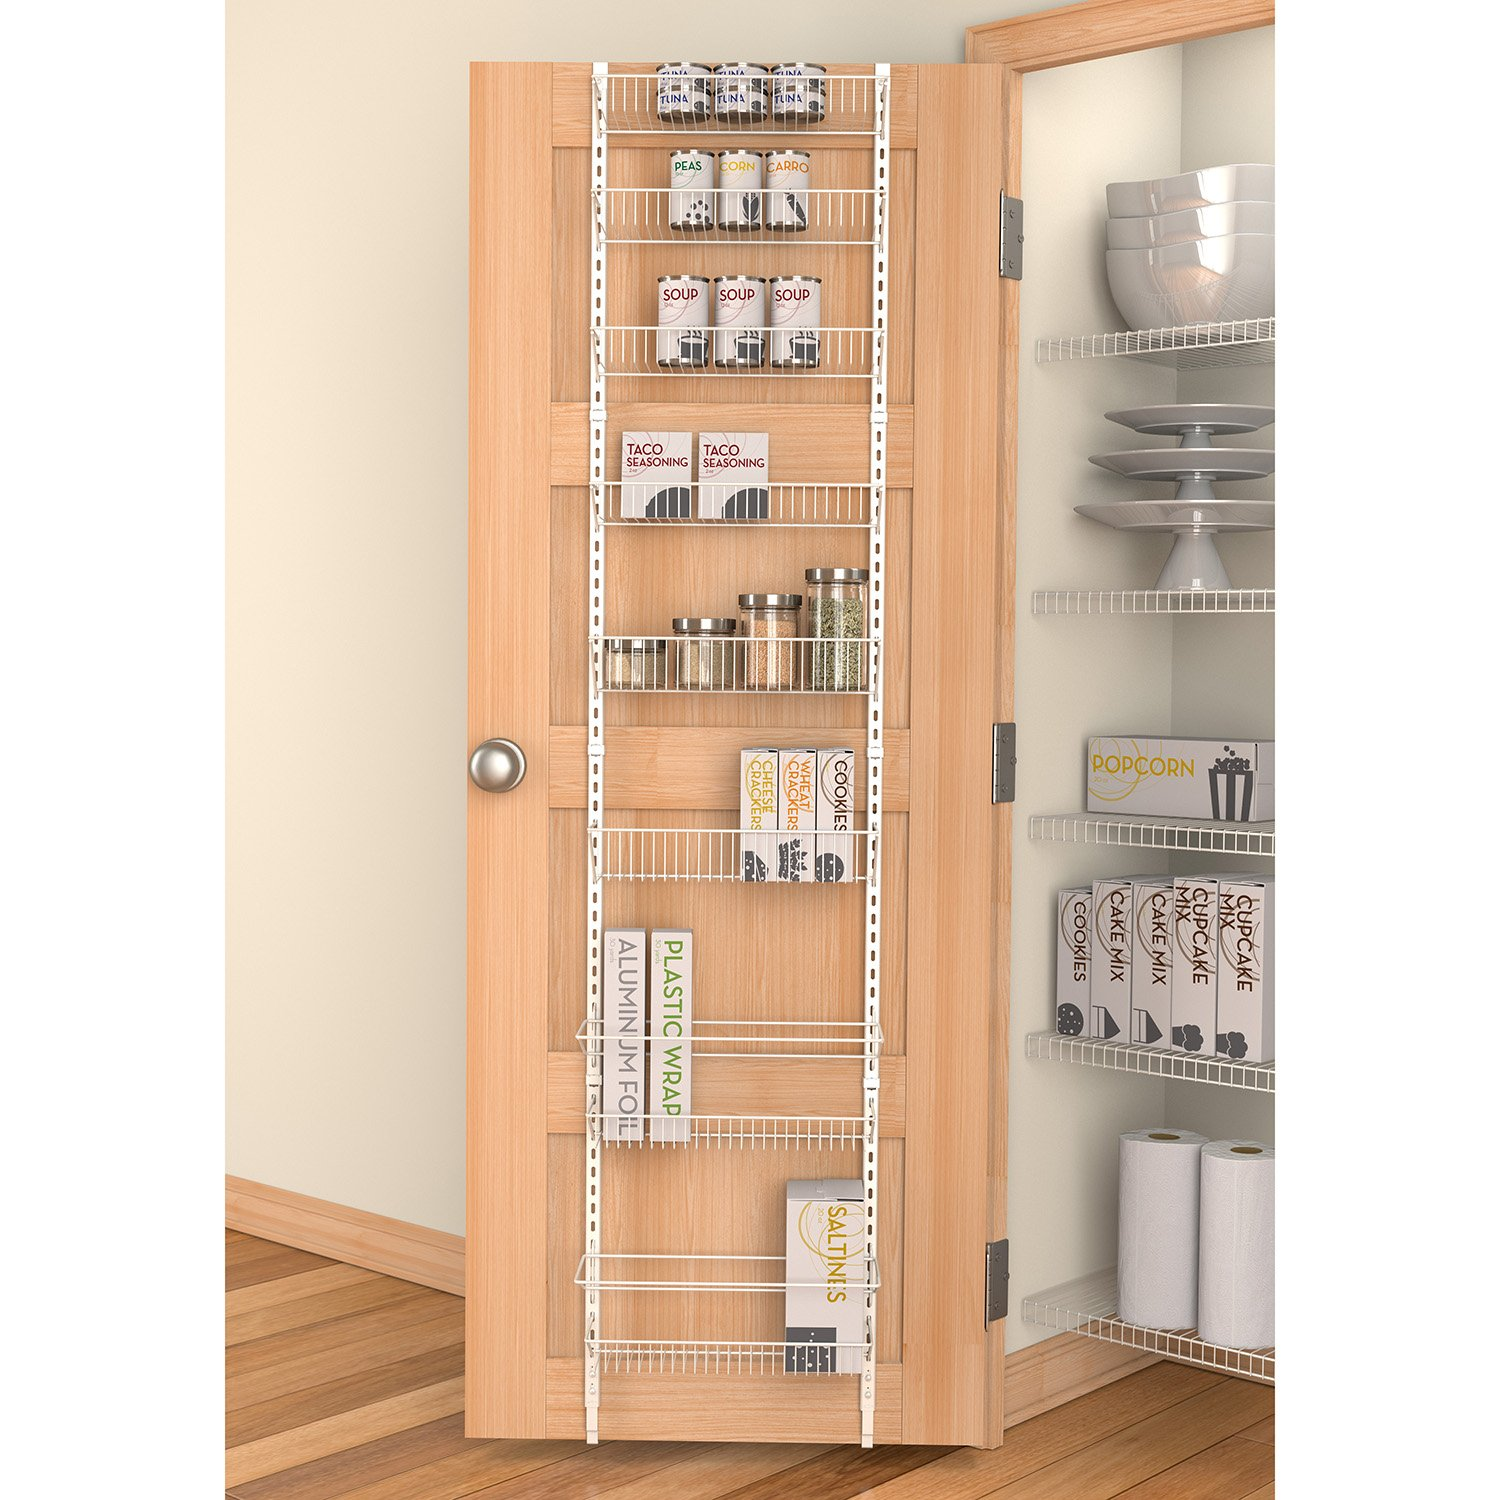 kitchen white back the amazon home dp com panacea organizers of door grayline organizer